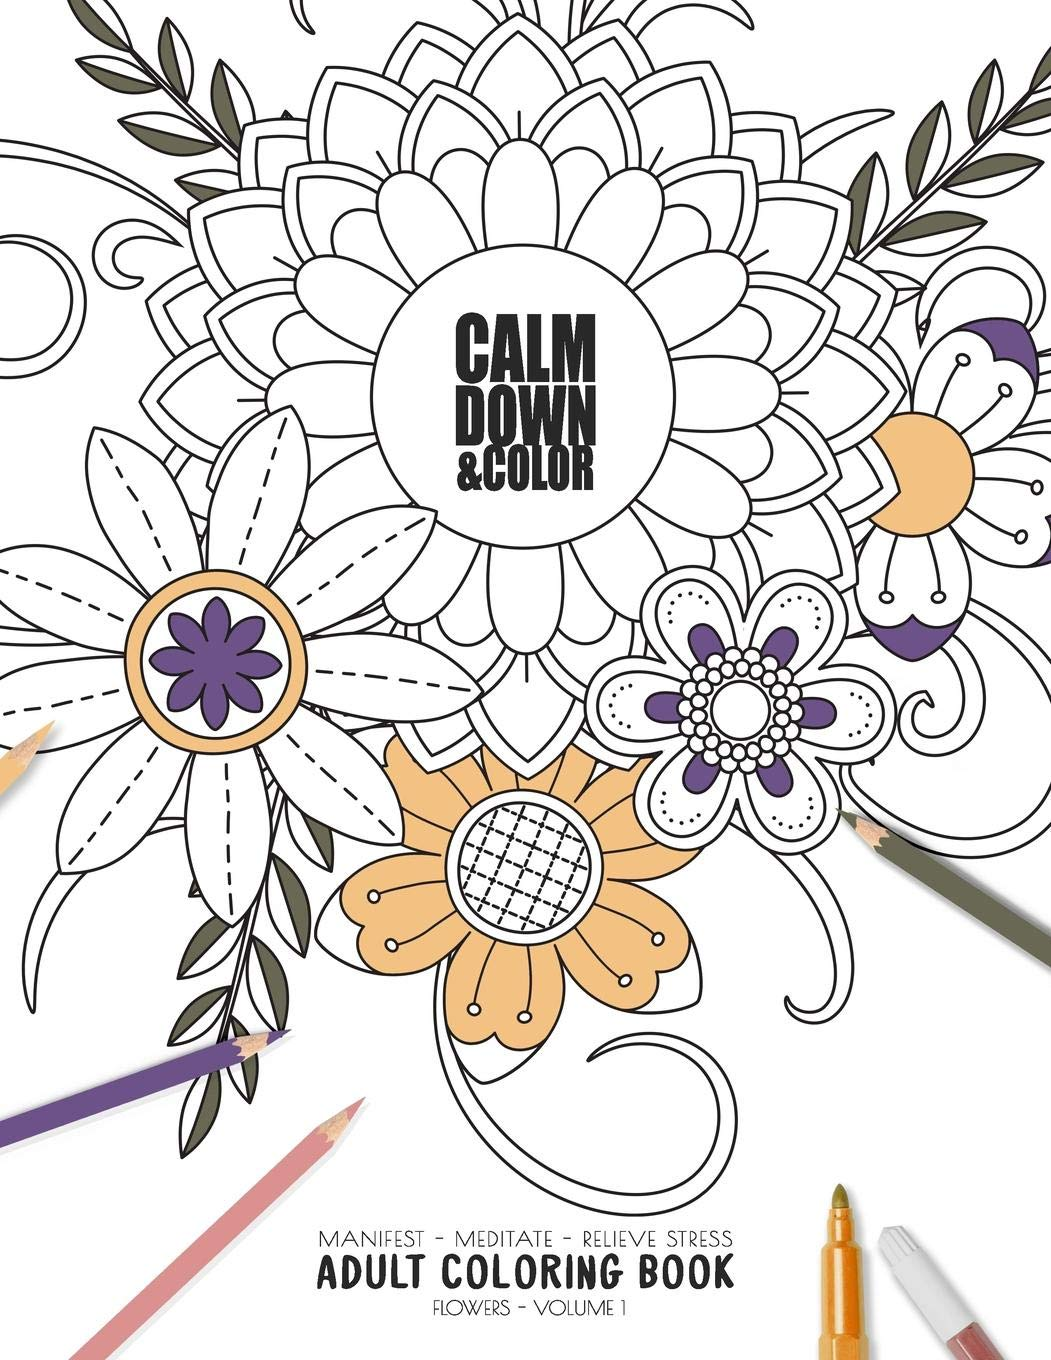 - Calm Down & Color - Manifest - Meditate - Relieve Stress - Adult